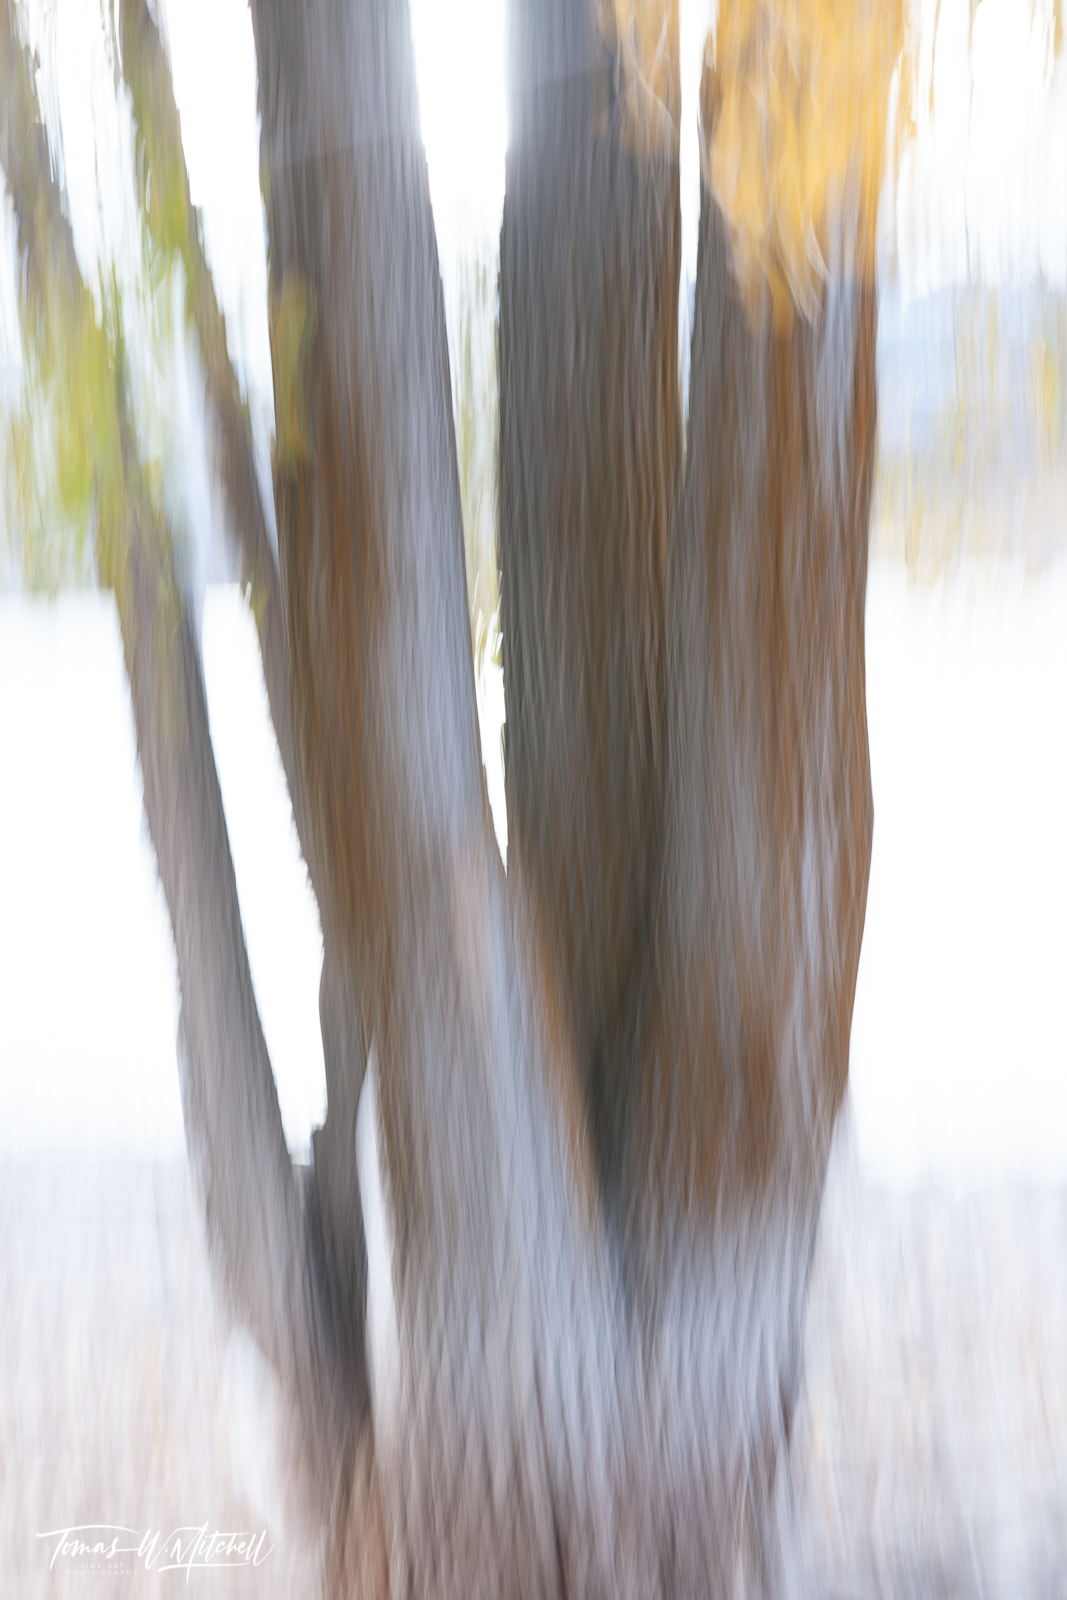 limited edition, fine art, prints, deer creek reservoir, utah, trees, abstract, photograph, leaves, water, autumn, texture, mountain, photo